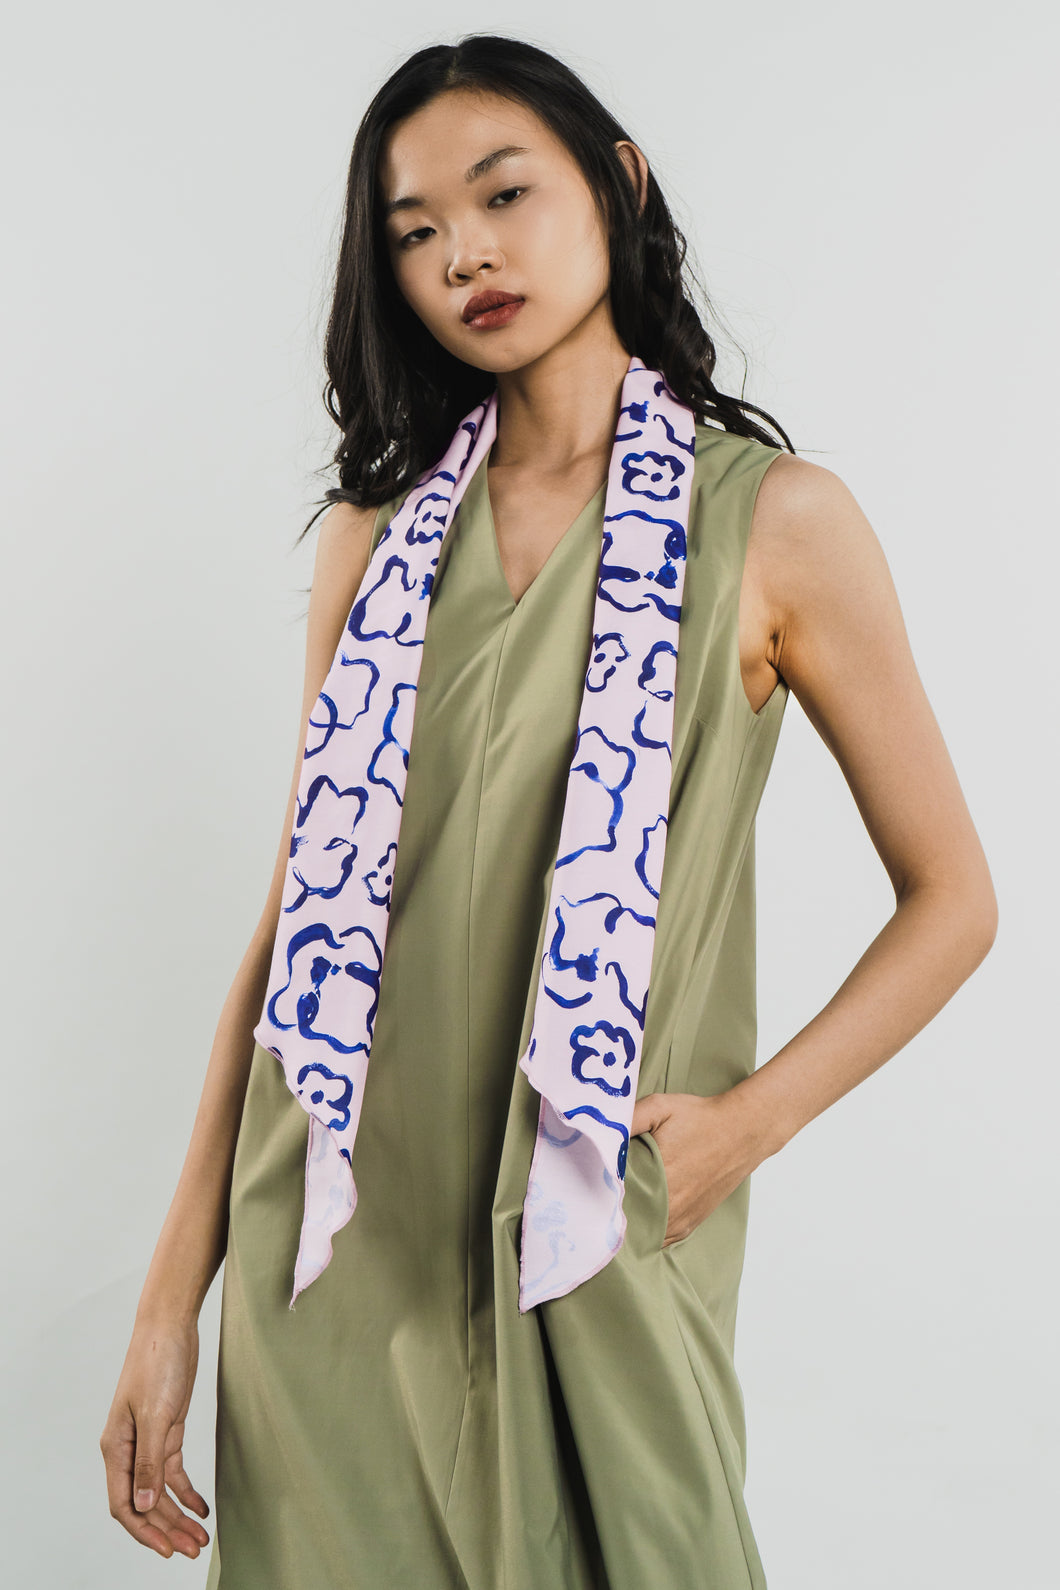 PINK SCARF - The Lyocell Printed Scarf